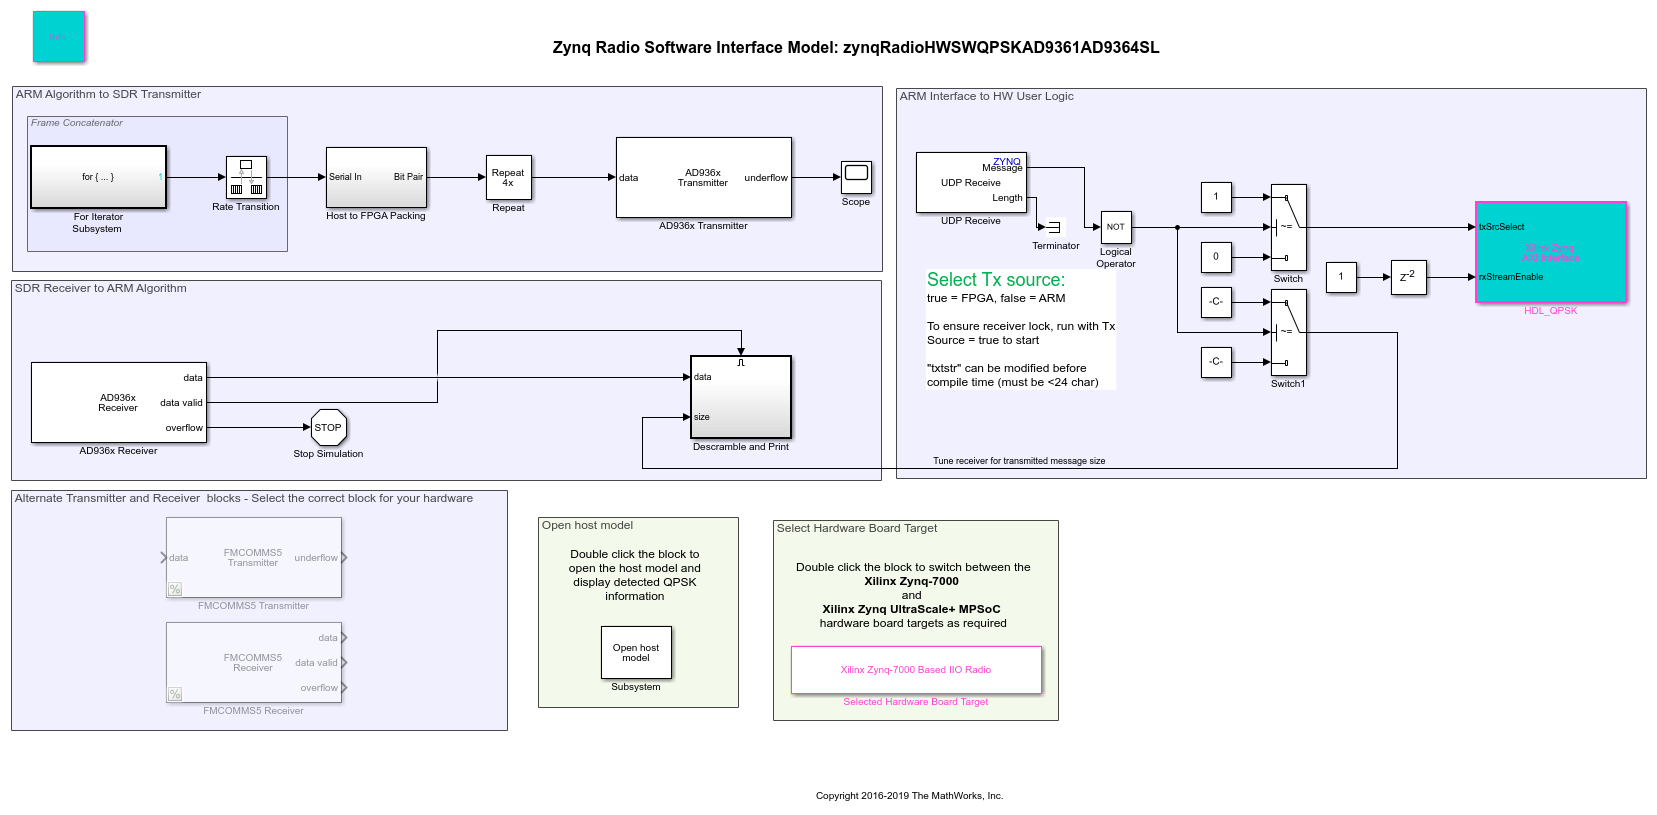 In this model, the switch has been replaced by a UDP receive block which  will be able to receive UDP packets and output the source choice value.